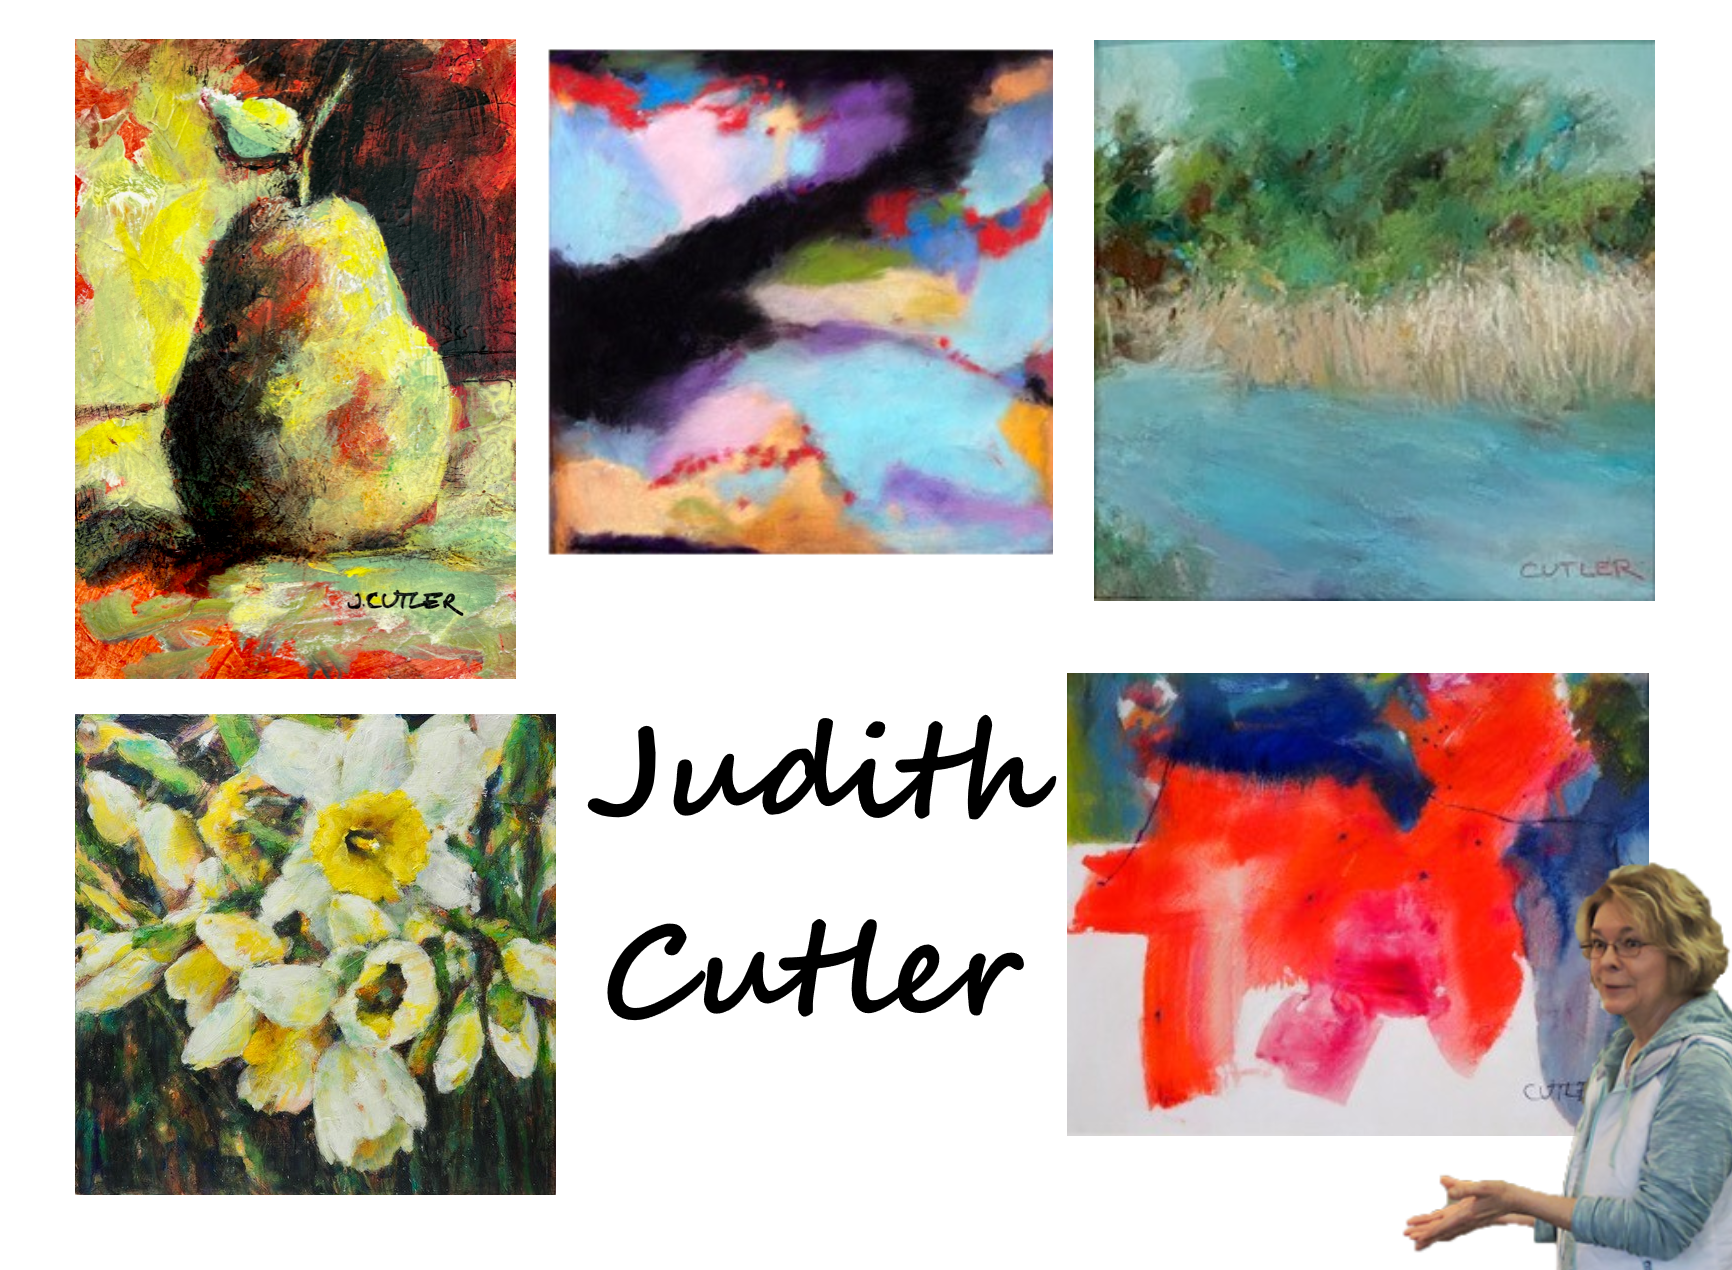 Judith Cutler Front Page 2